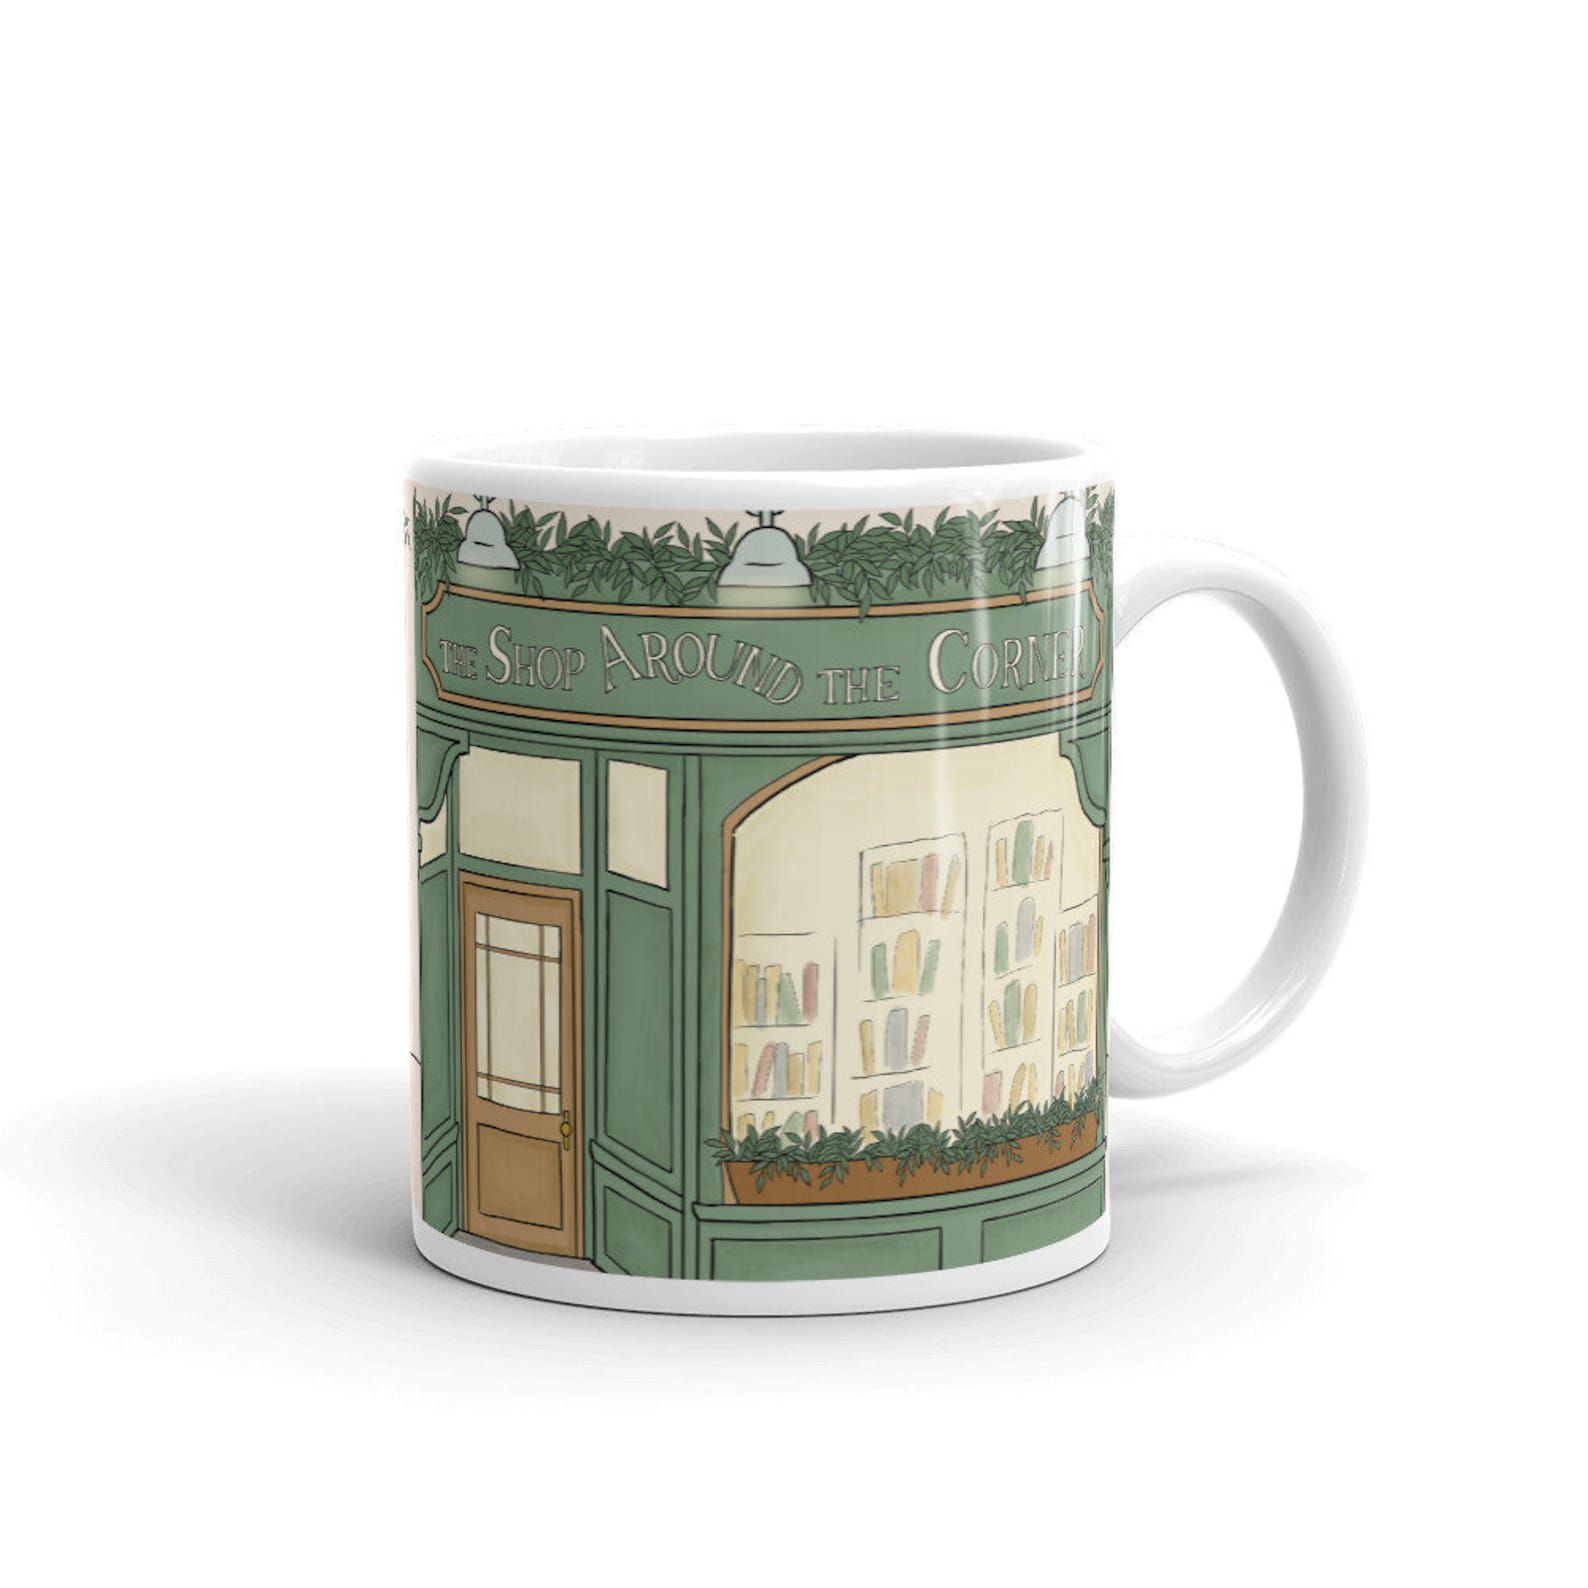 A mug with an image of the storefront of The Shop Around the Corner from the movie You've Got Mail.